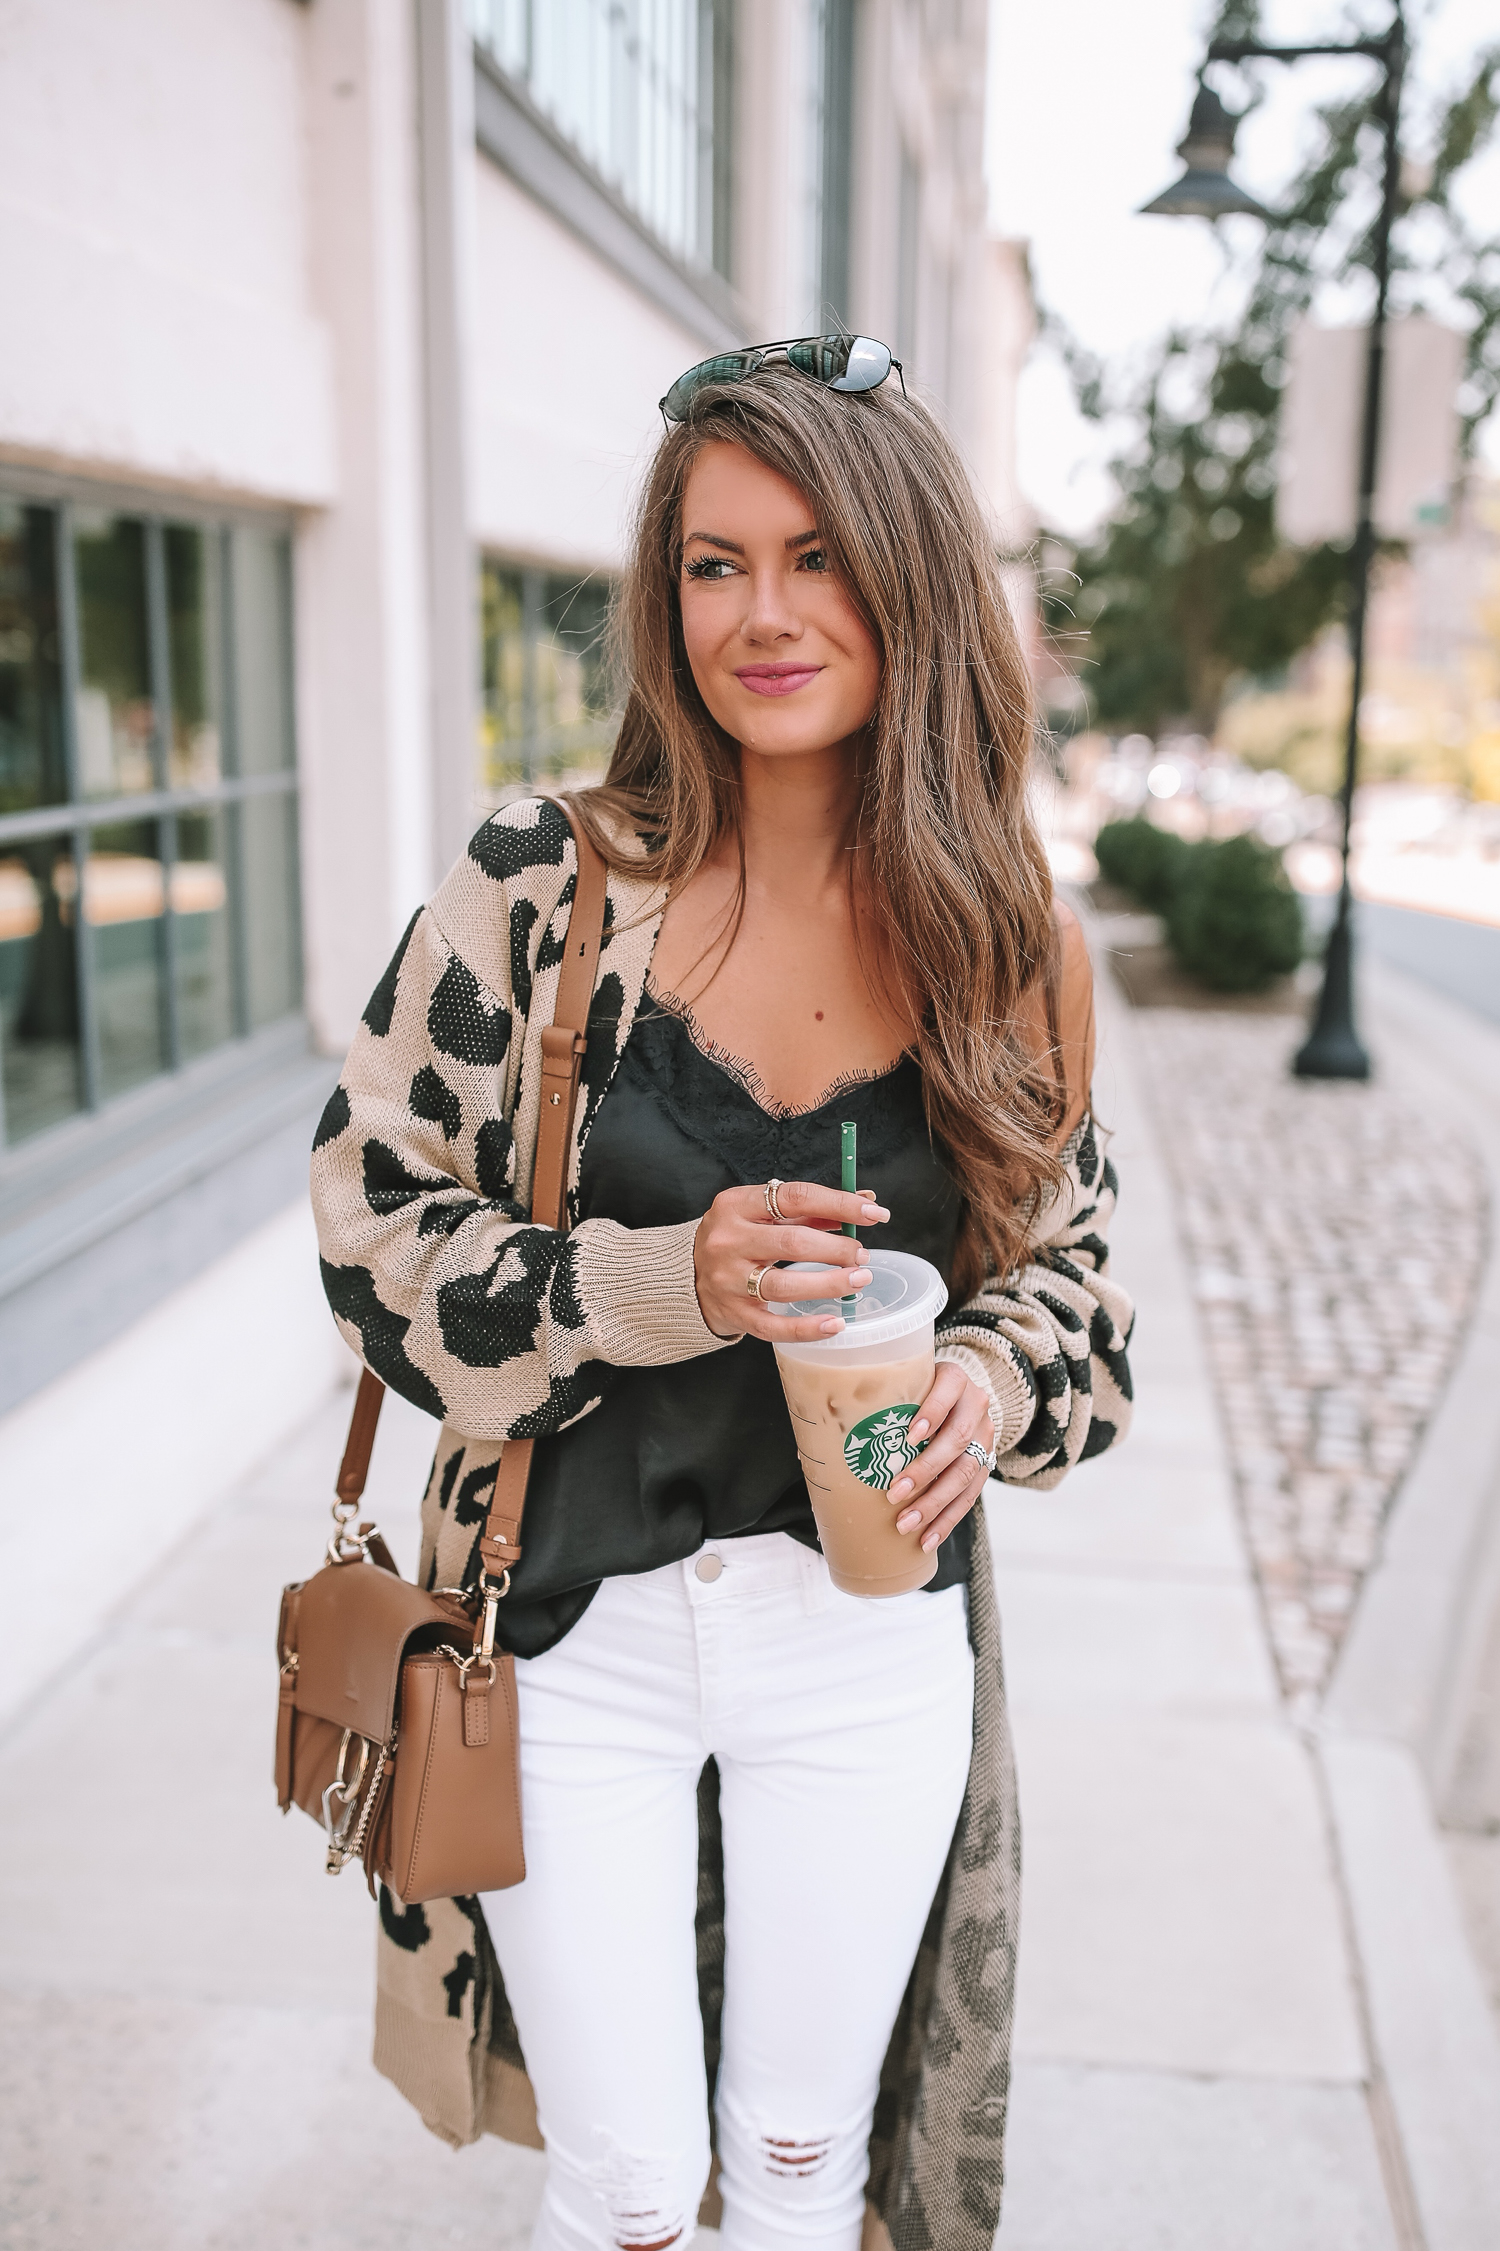 Love the Look! Get Ready for Fall with a Leopard Cardigan and White Jeans